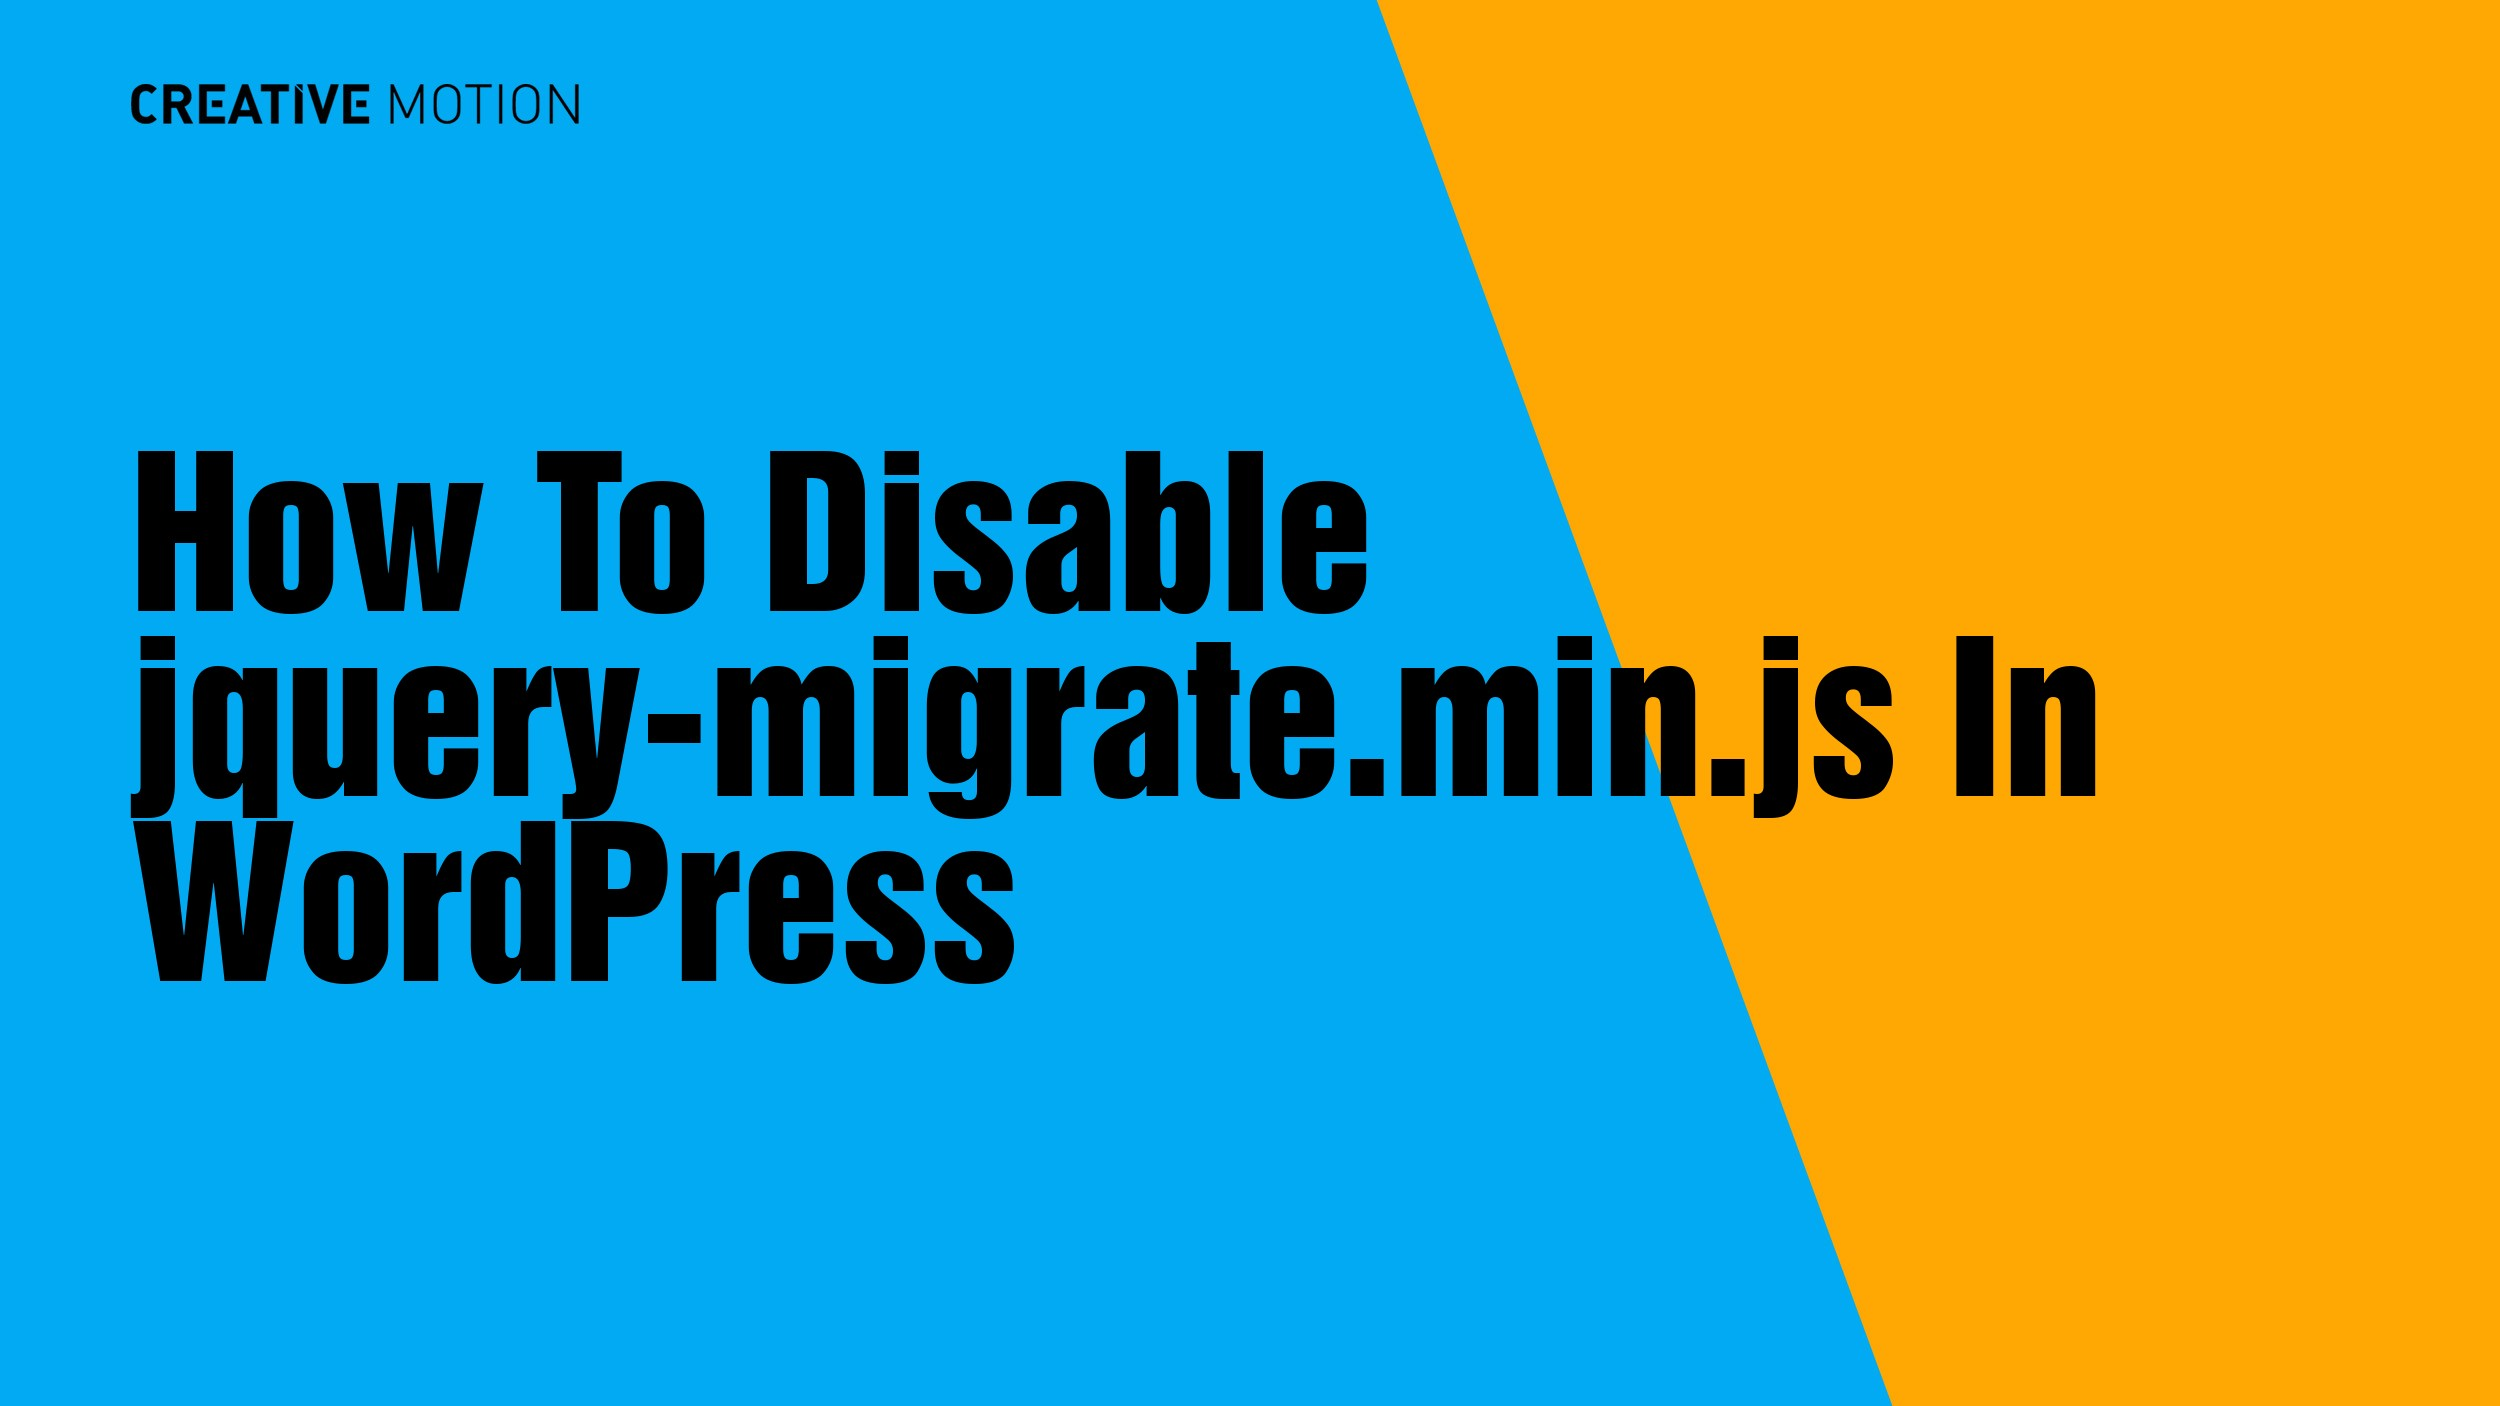 How To Disable jquery-migrate.min.js In WordPress